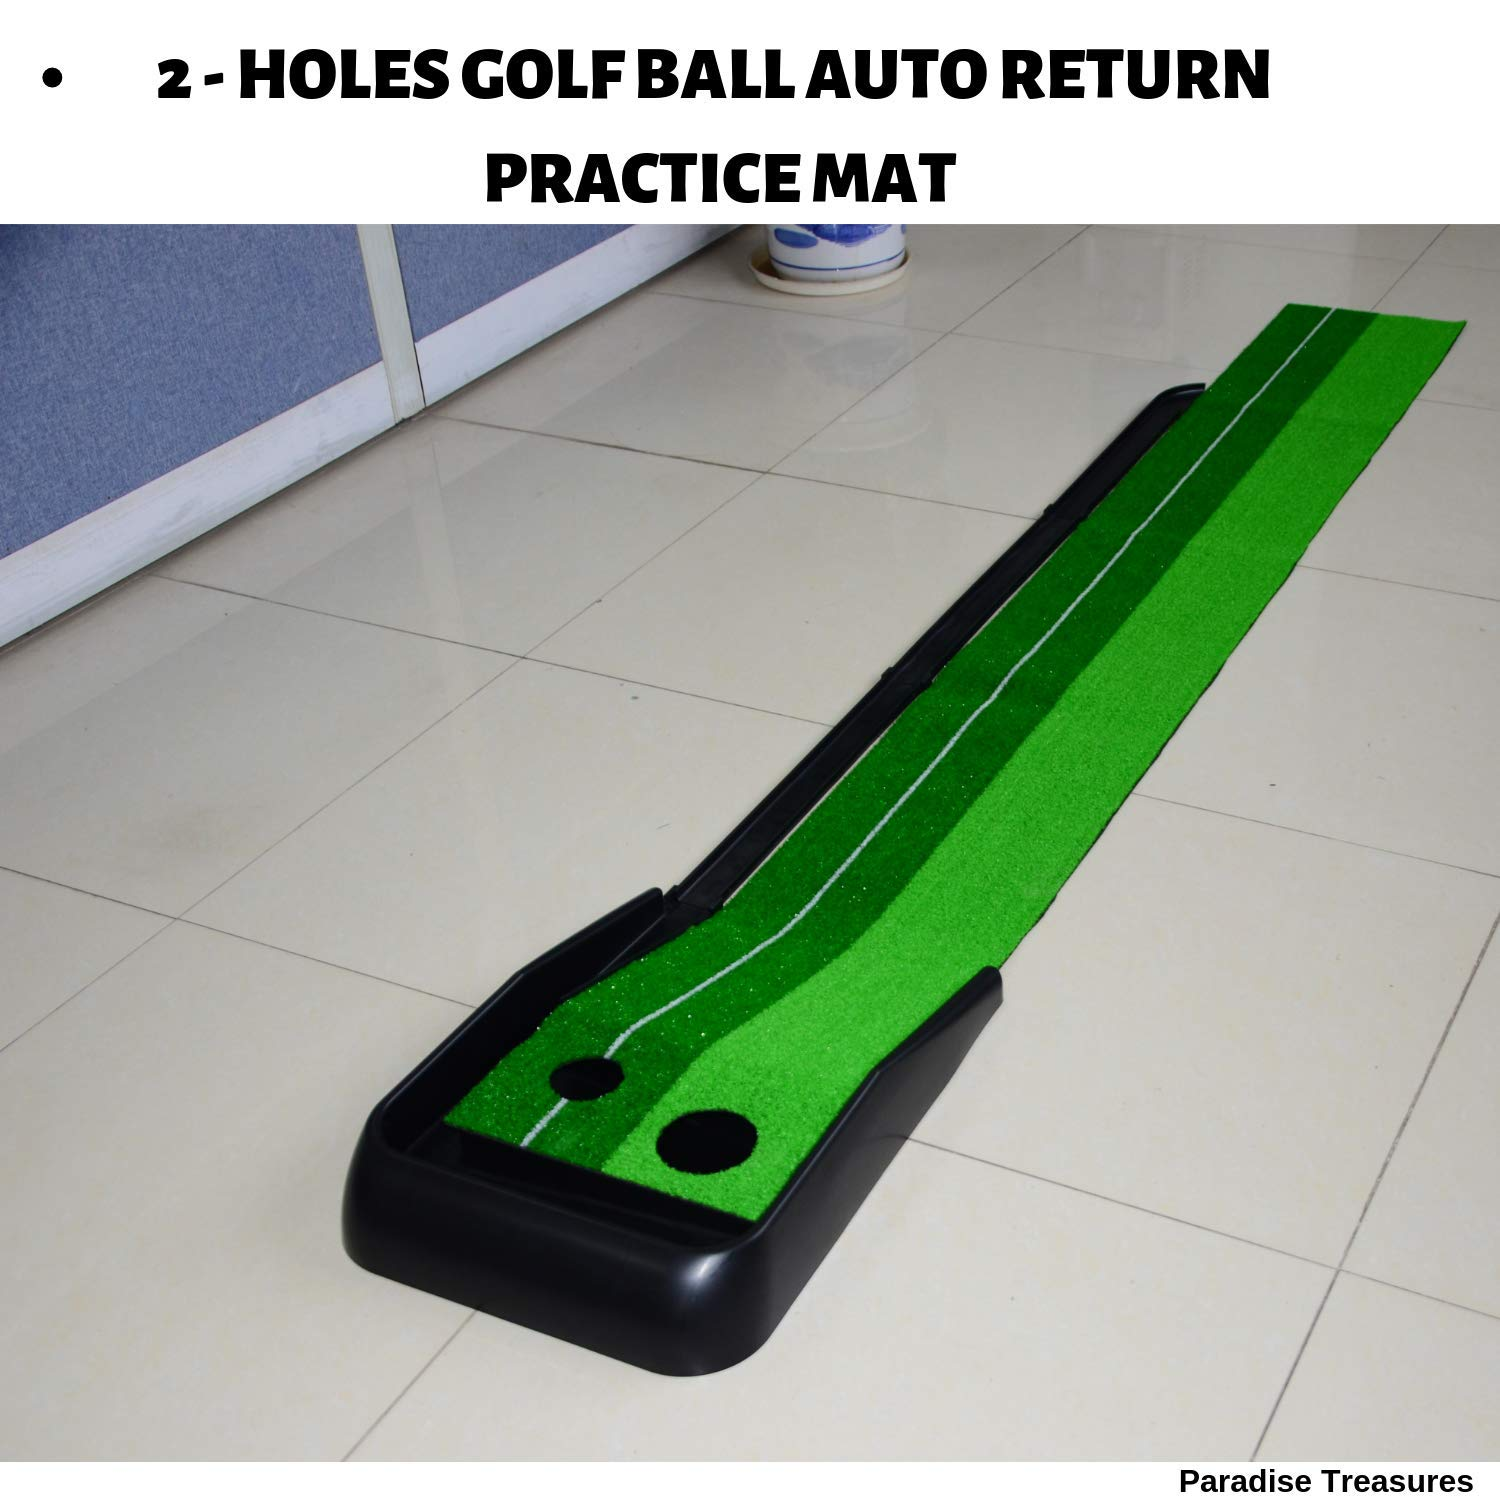 Paradise Treasures Golf Putting Green System Professional Practice Green Long Challenging Putter Indoor/Outdoor Golf Simulator Training Mat Aid Equipment Gift for Dad (1.5ftx10 auto Return Green)